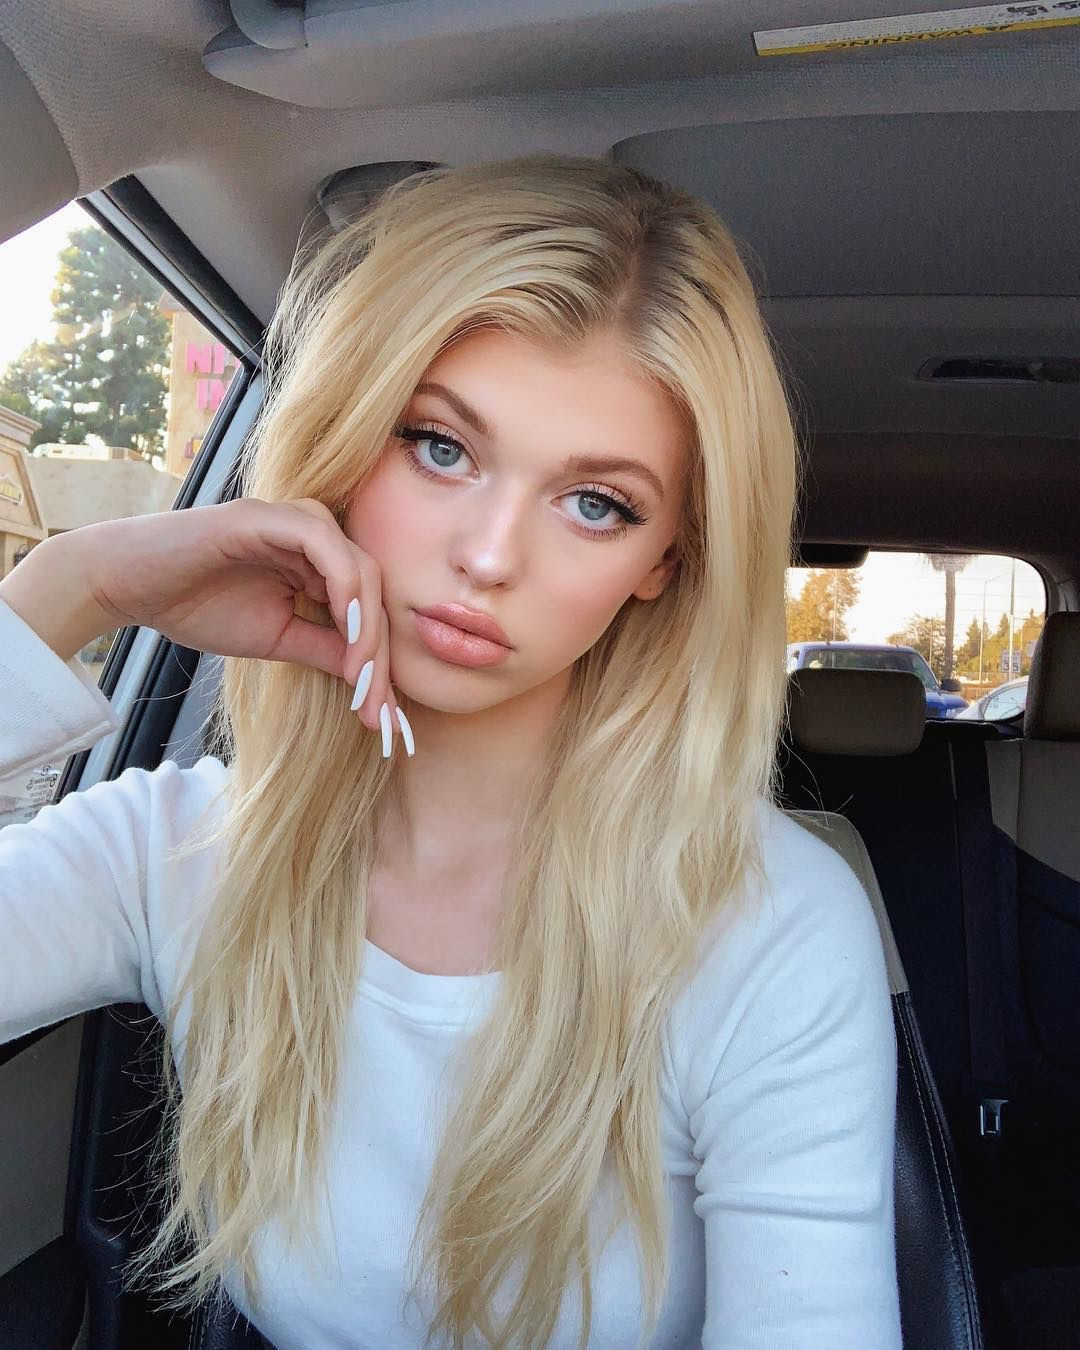 2020 Fashion Blonde Wigs For White Women Brown To Blonde Brassy Balayage Full Lace Wigs Human Hair Caucasian Blonde Pigtail Wig Blond With Brown Highlights Lace Frontal Wigs